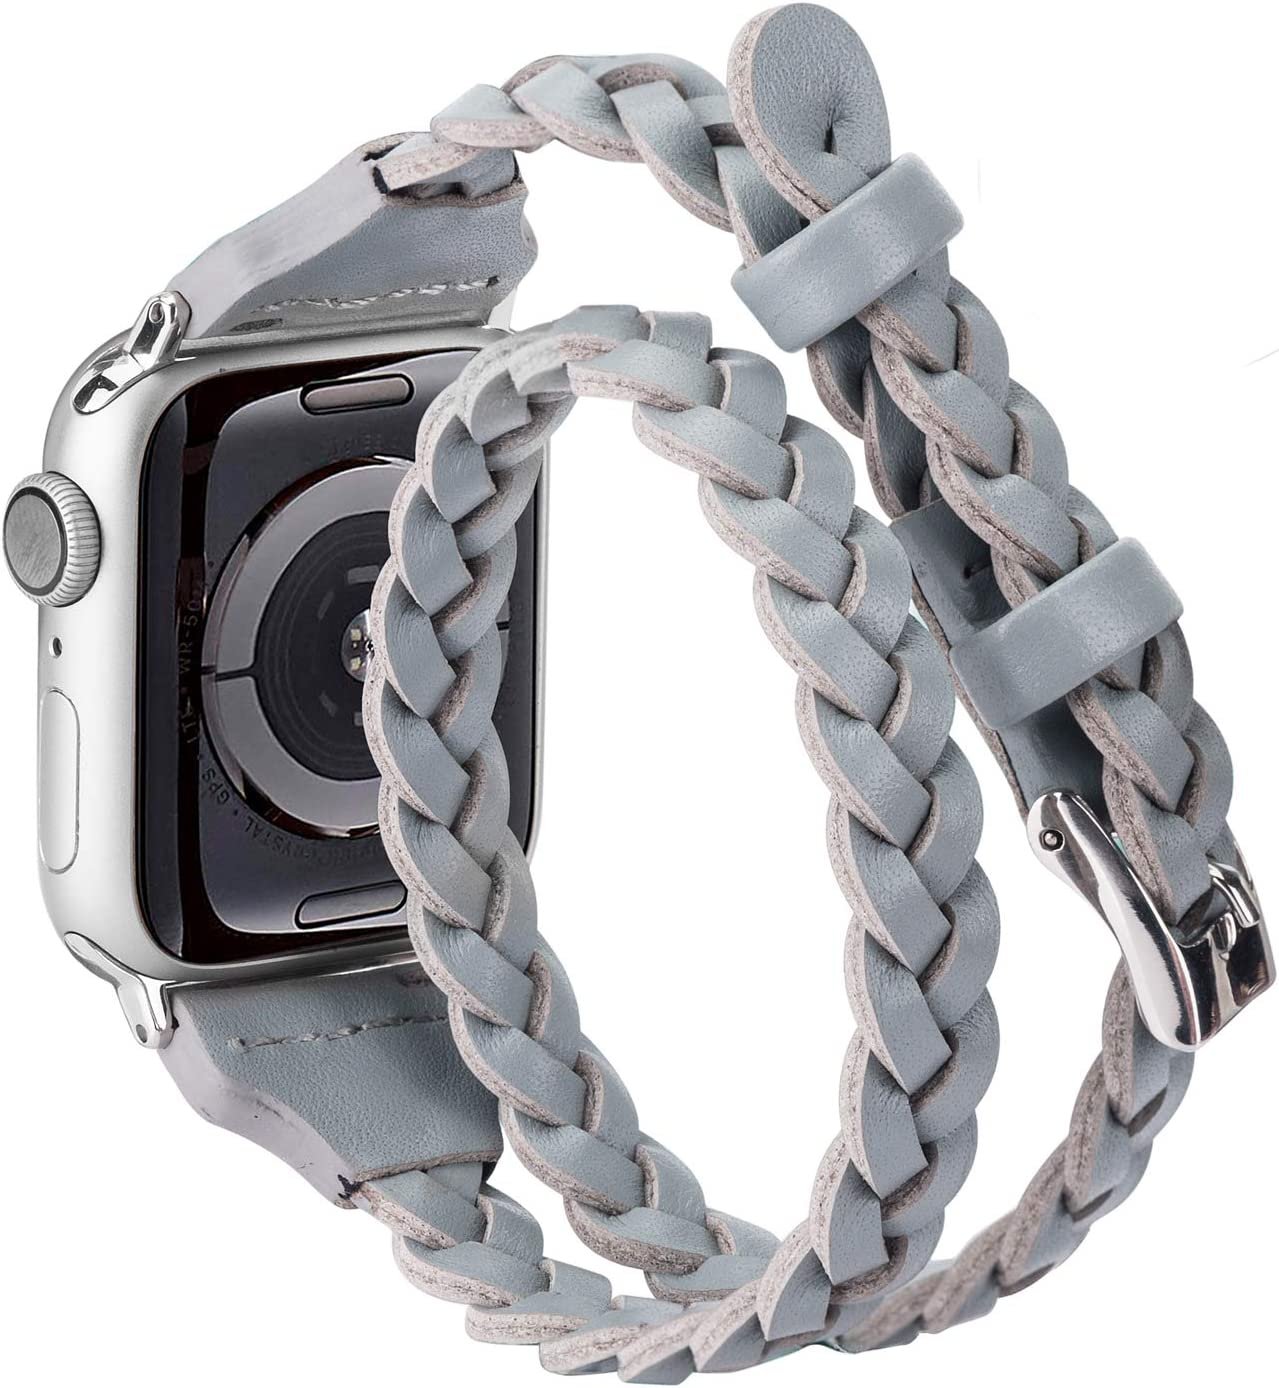 Moolia Double Leather Band Compatible with Apple Watch 38mm 40mm, Women Girls Woven Slim Leather Watch Strap Double Tour Bracelet Replacement for iWatch SE Series 6 5 4 3 2 1 (Gray, 38mm/40mm)